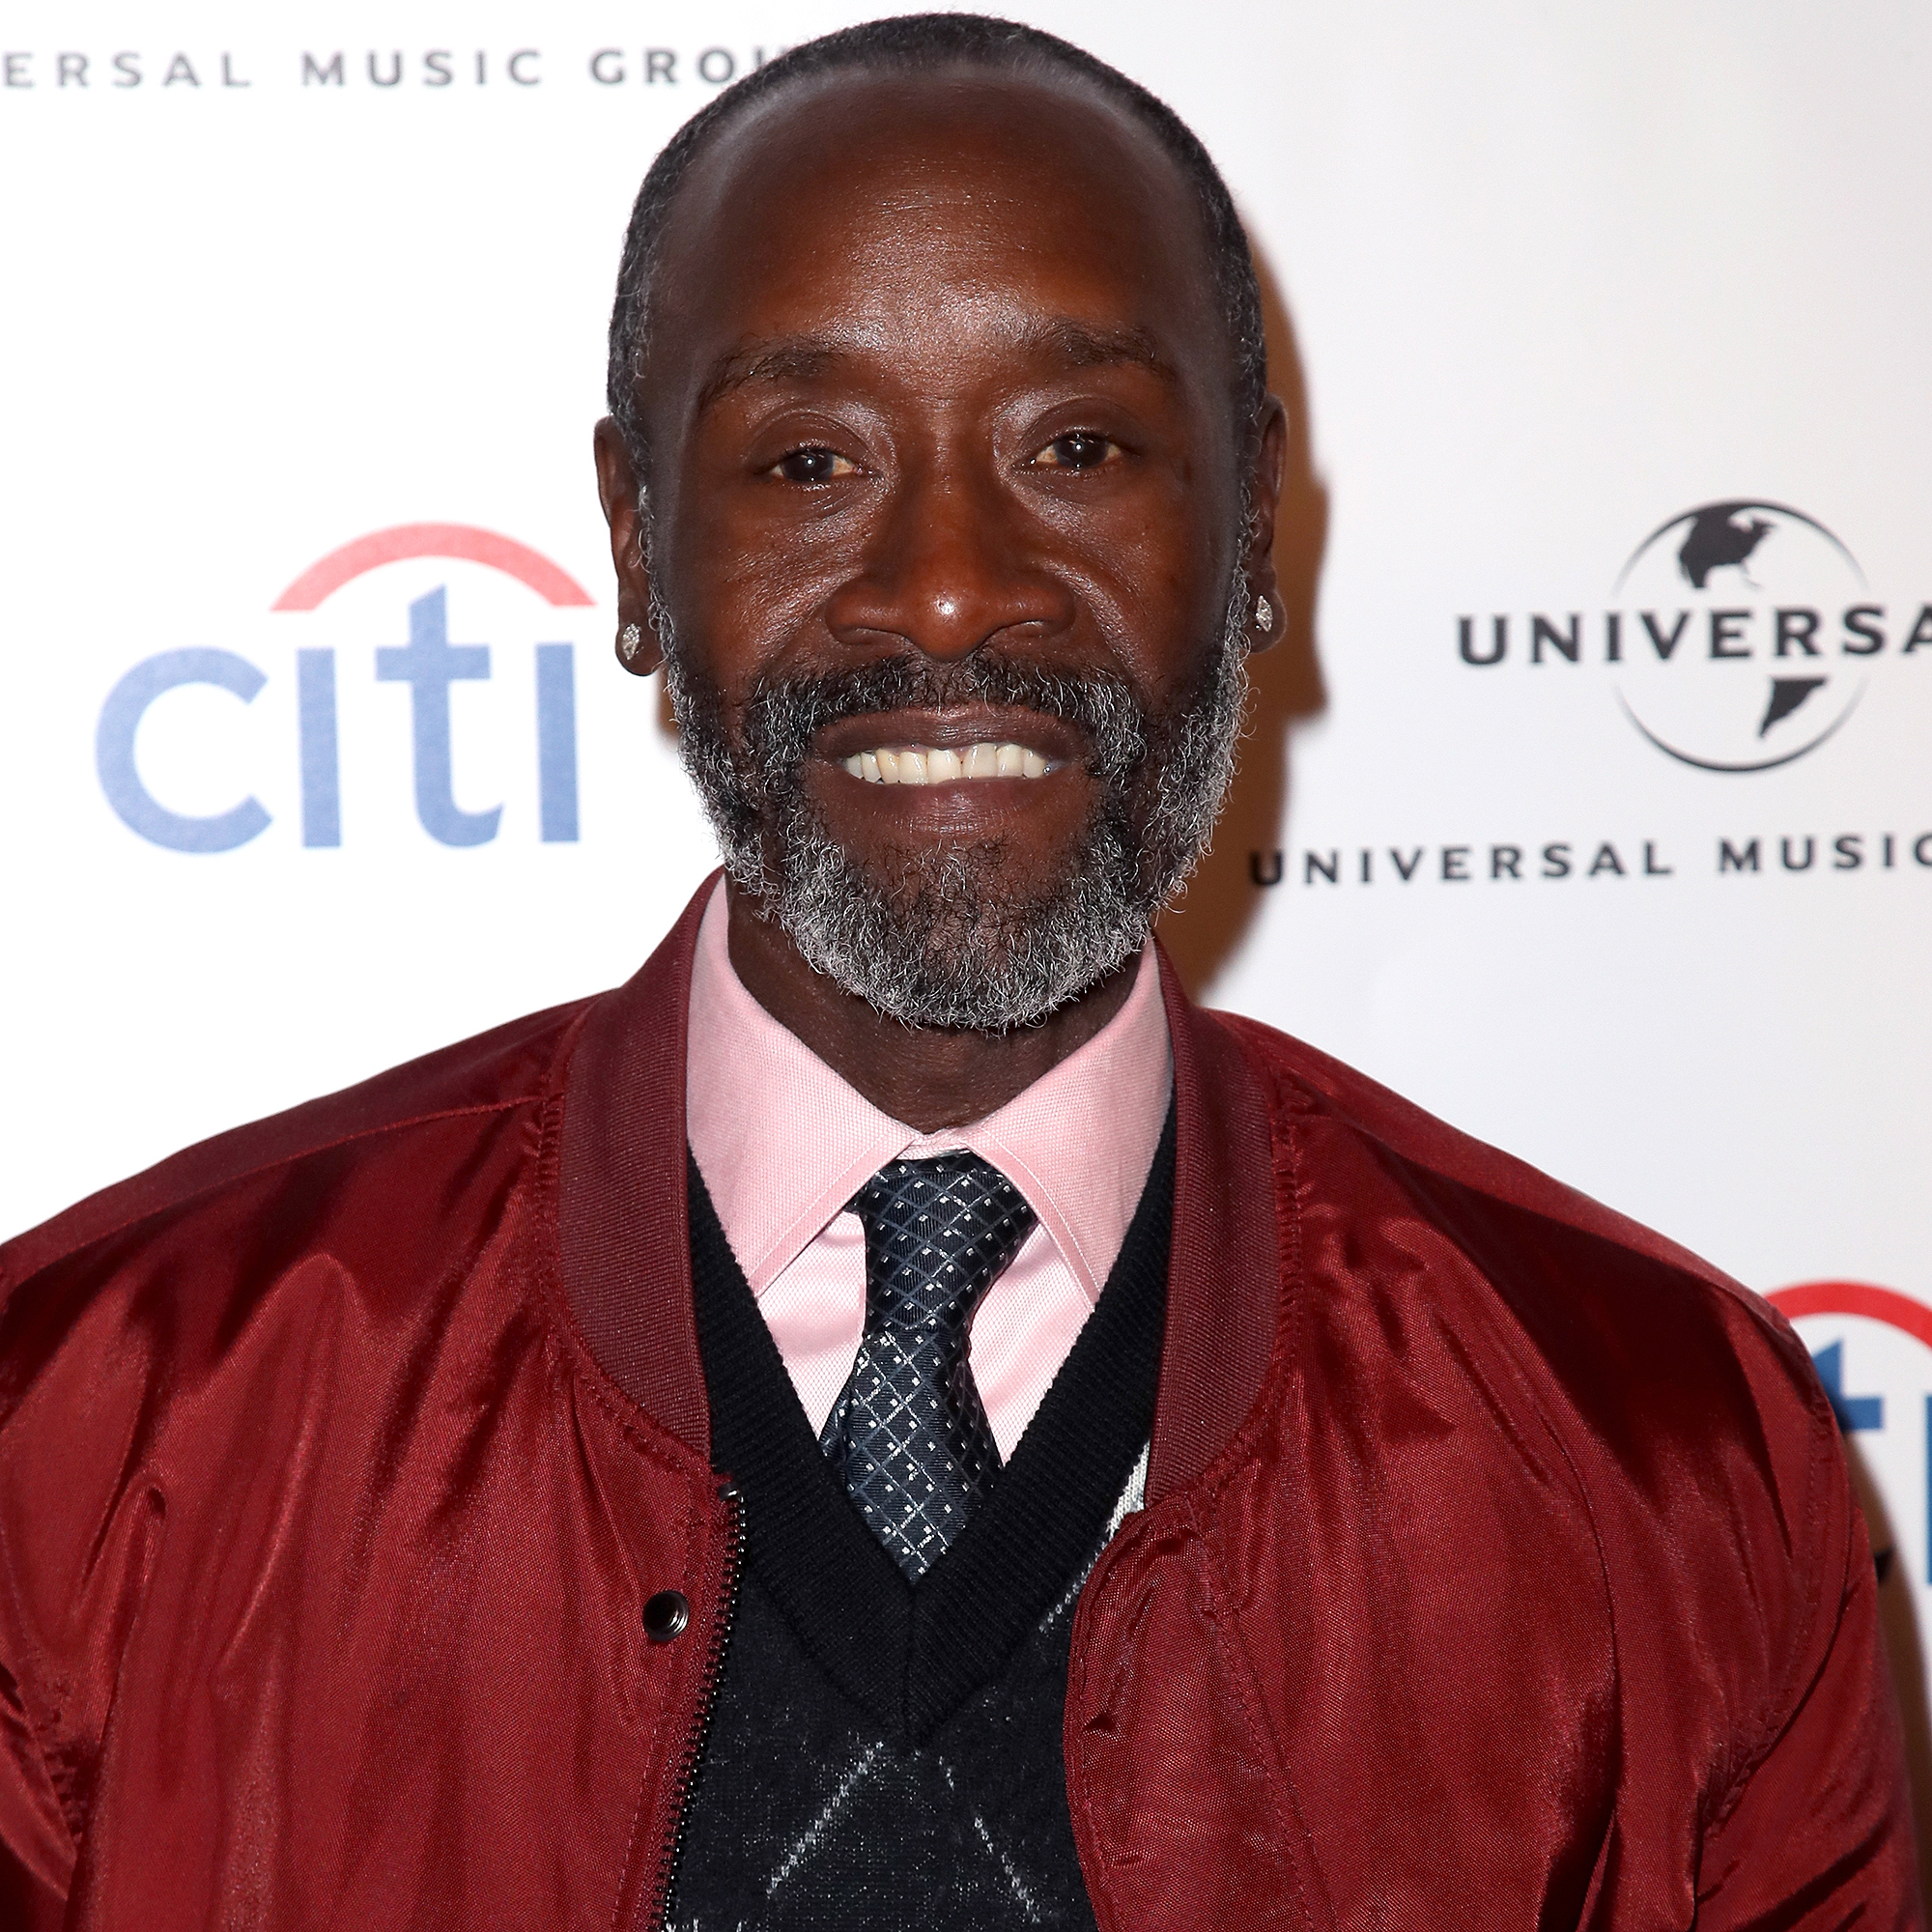 Don Cheadle attends Universal Music Group's 2017 GRAMMY after party at The Theatre at Ace Hotel on February 12, 2017 in Los Angeles, California.